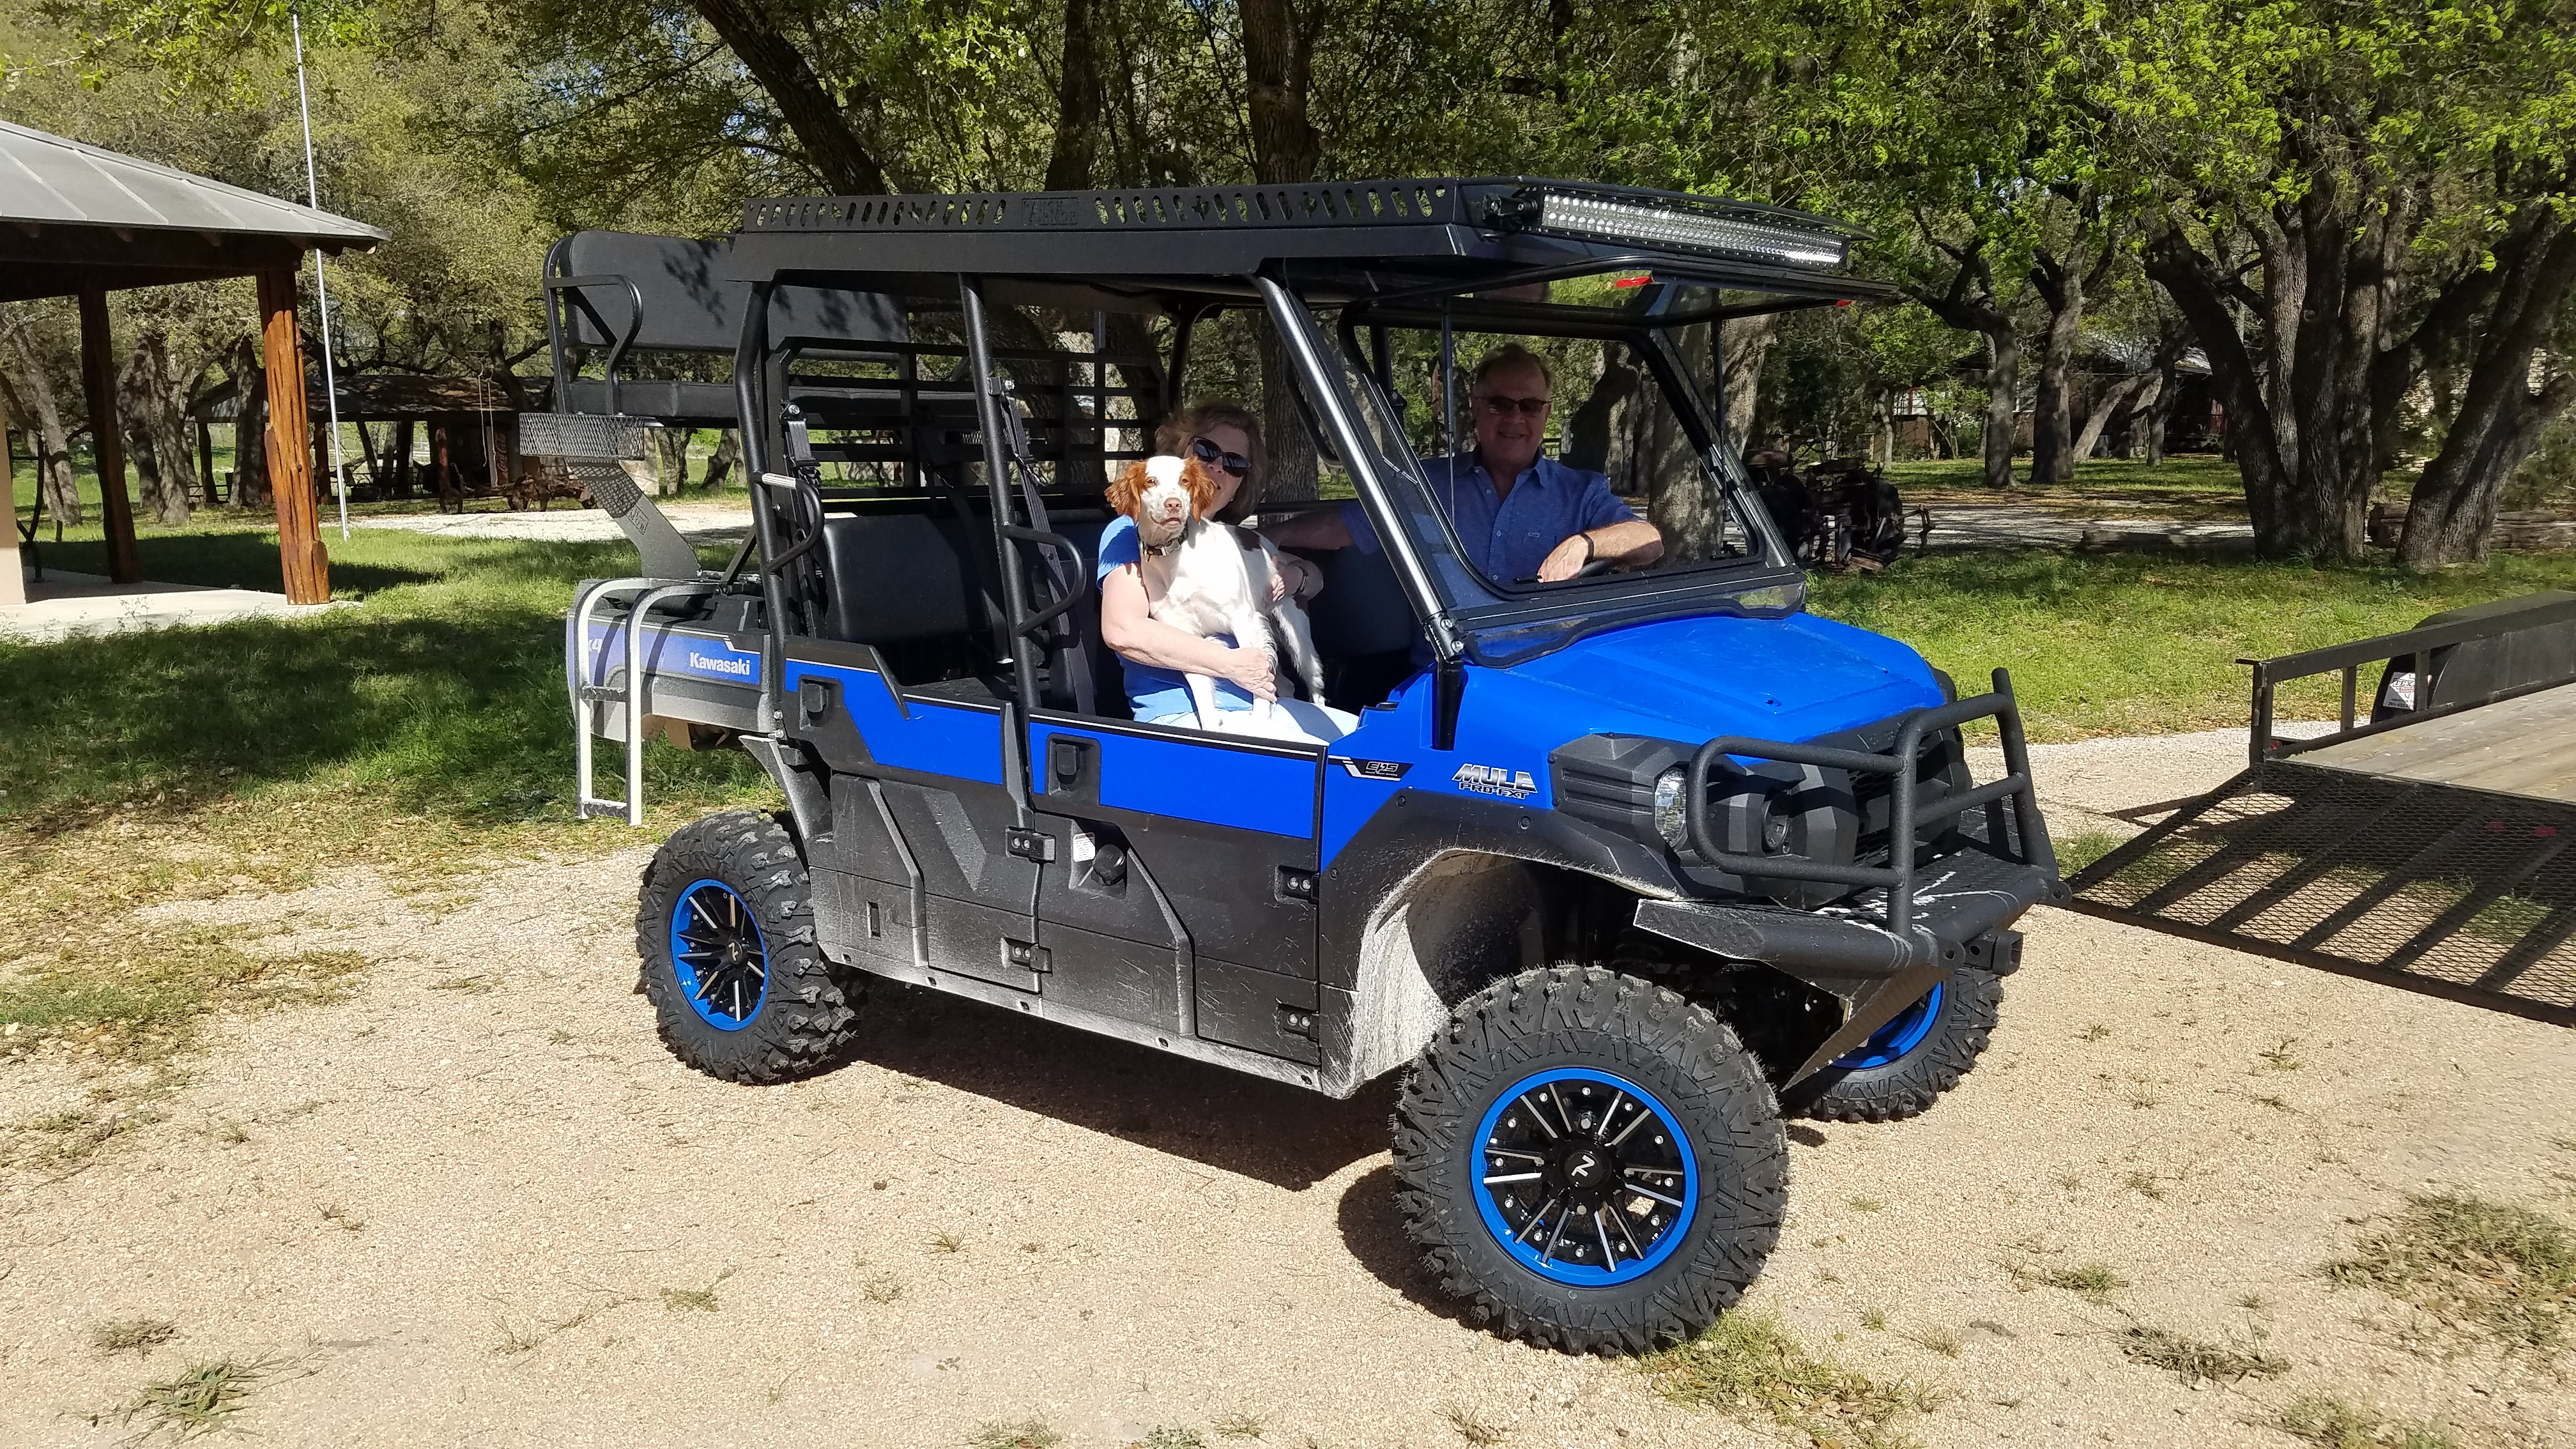 kawasaki-mule-pro-fxt-metal-roof-and-high-seat-outfit-for-family.jpg